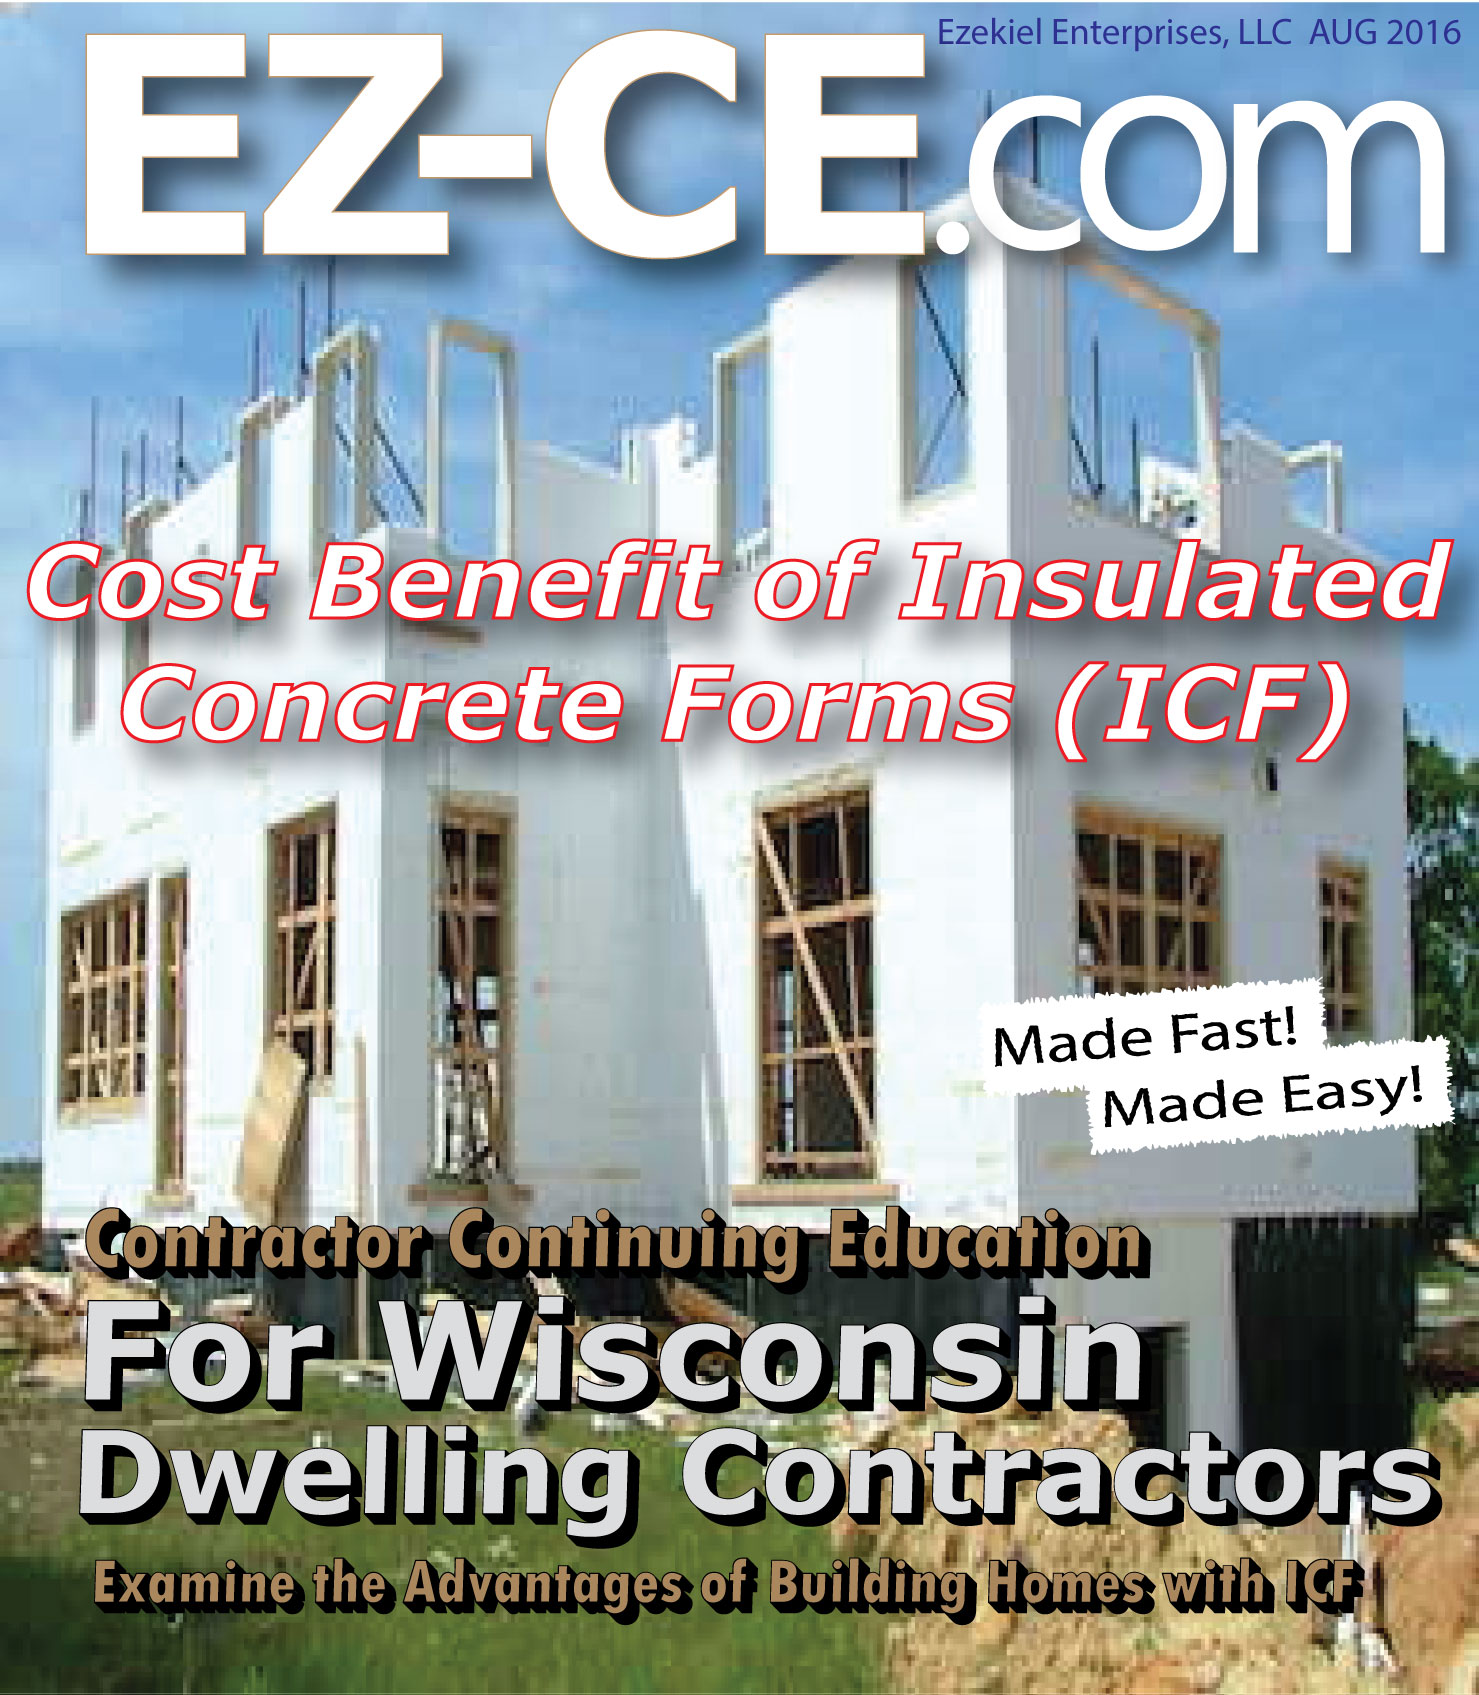 EZCEcontractor-course-cost-benefit-of-ICF